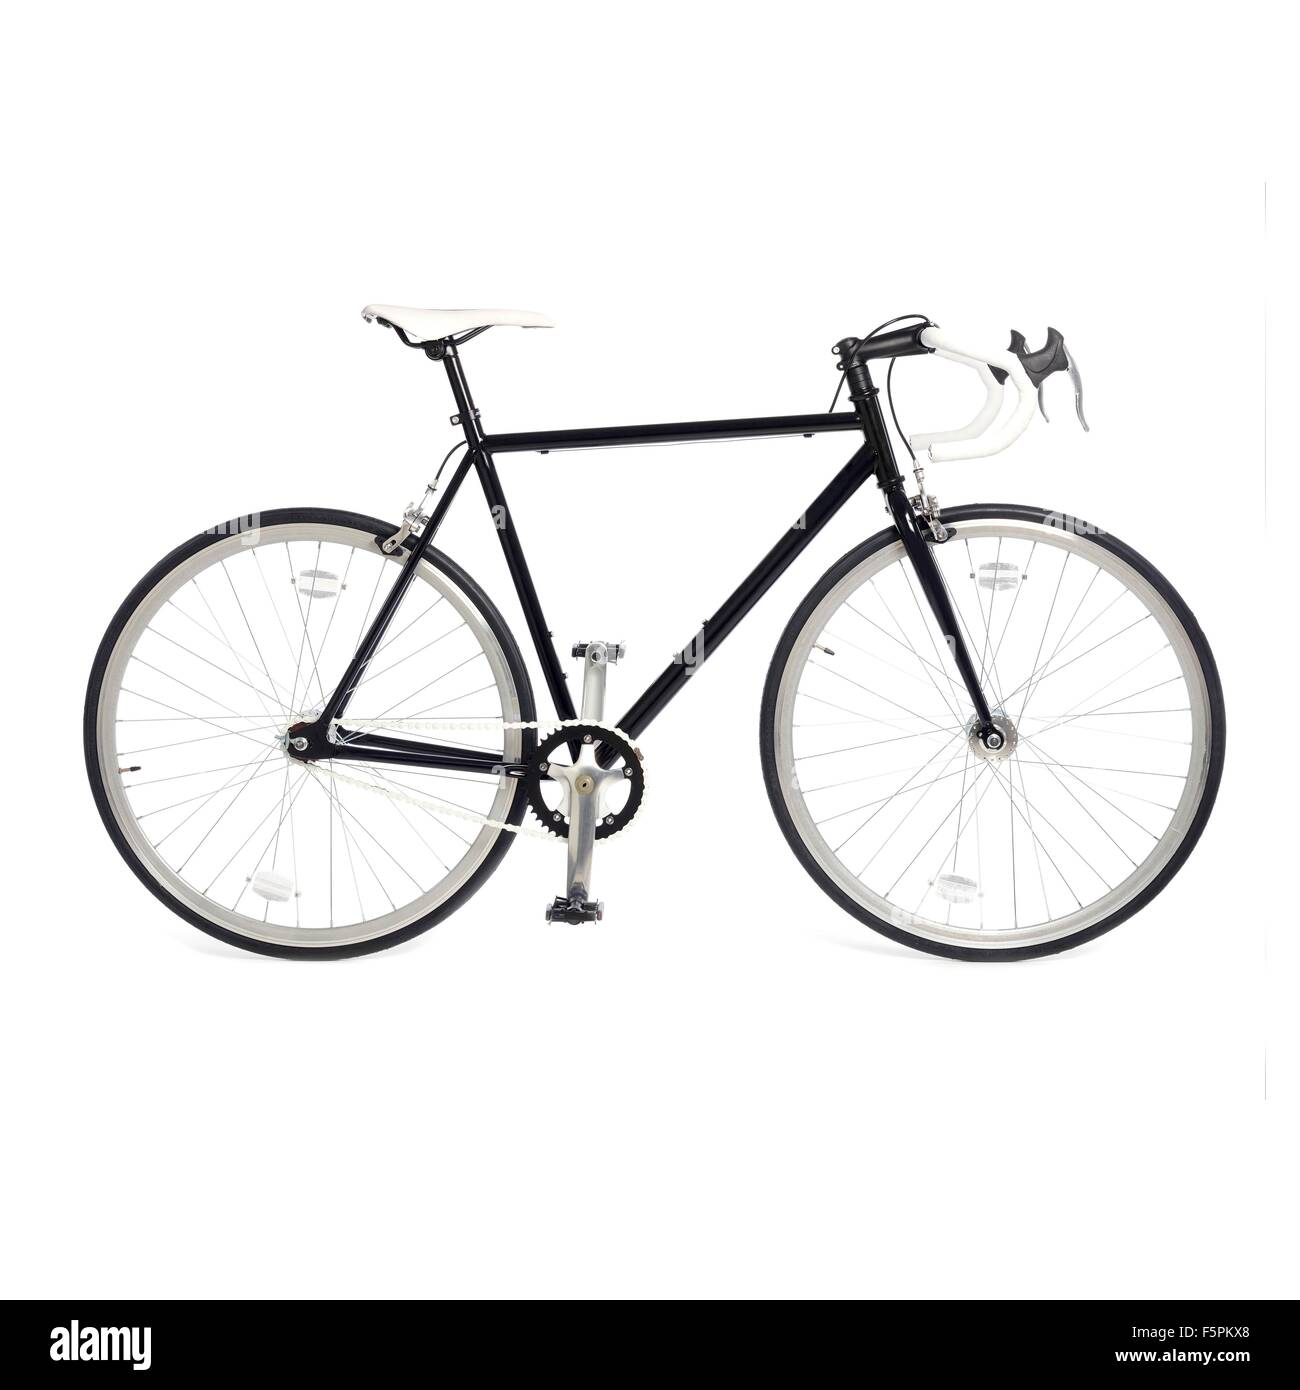 Fixed-gear road bike against a white background. - Stock Image